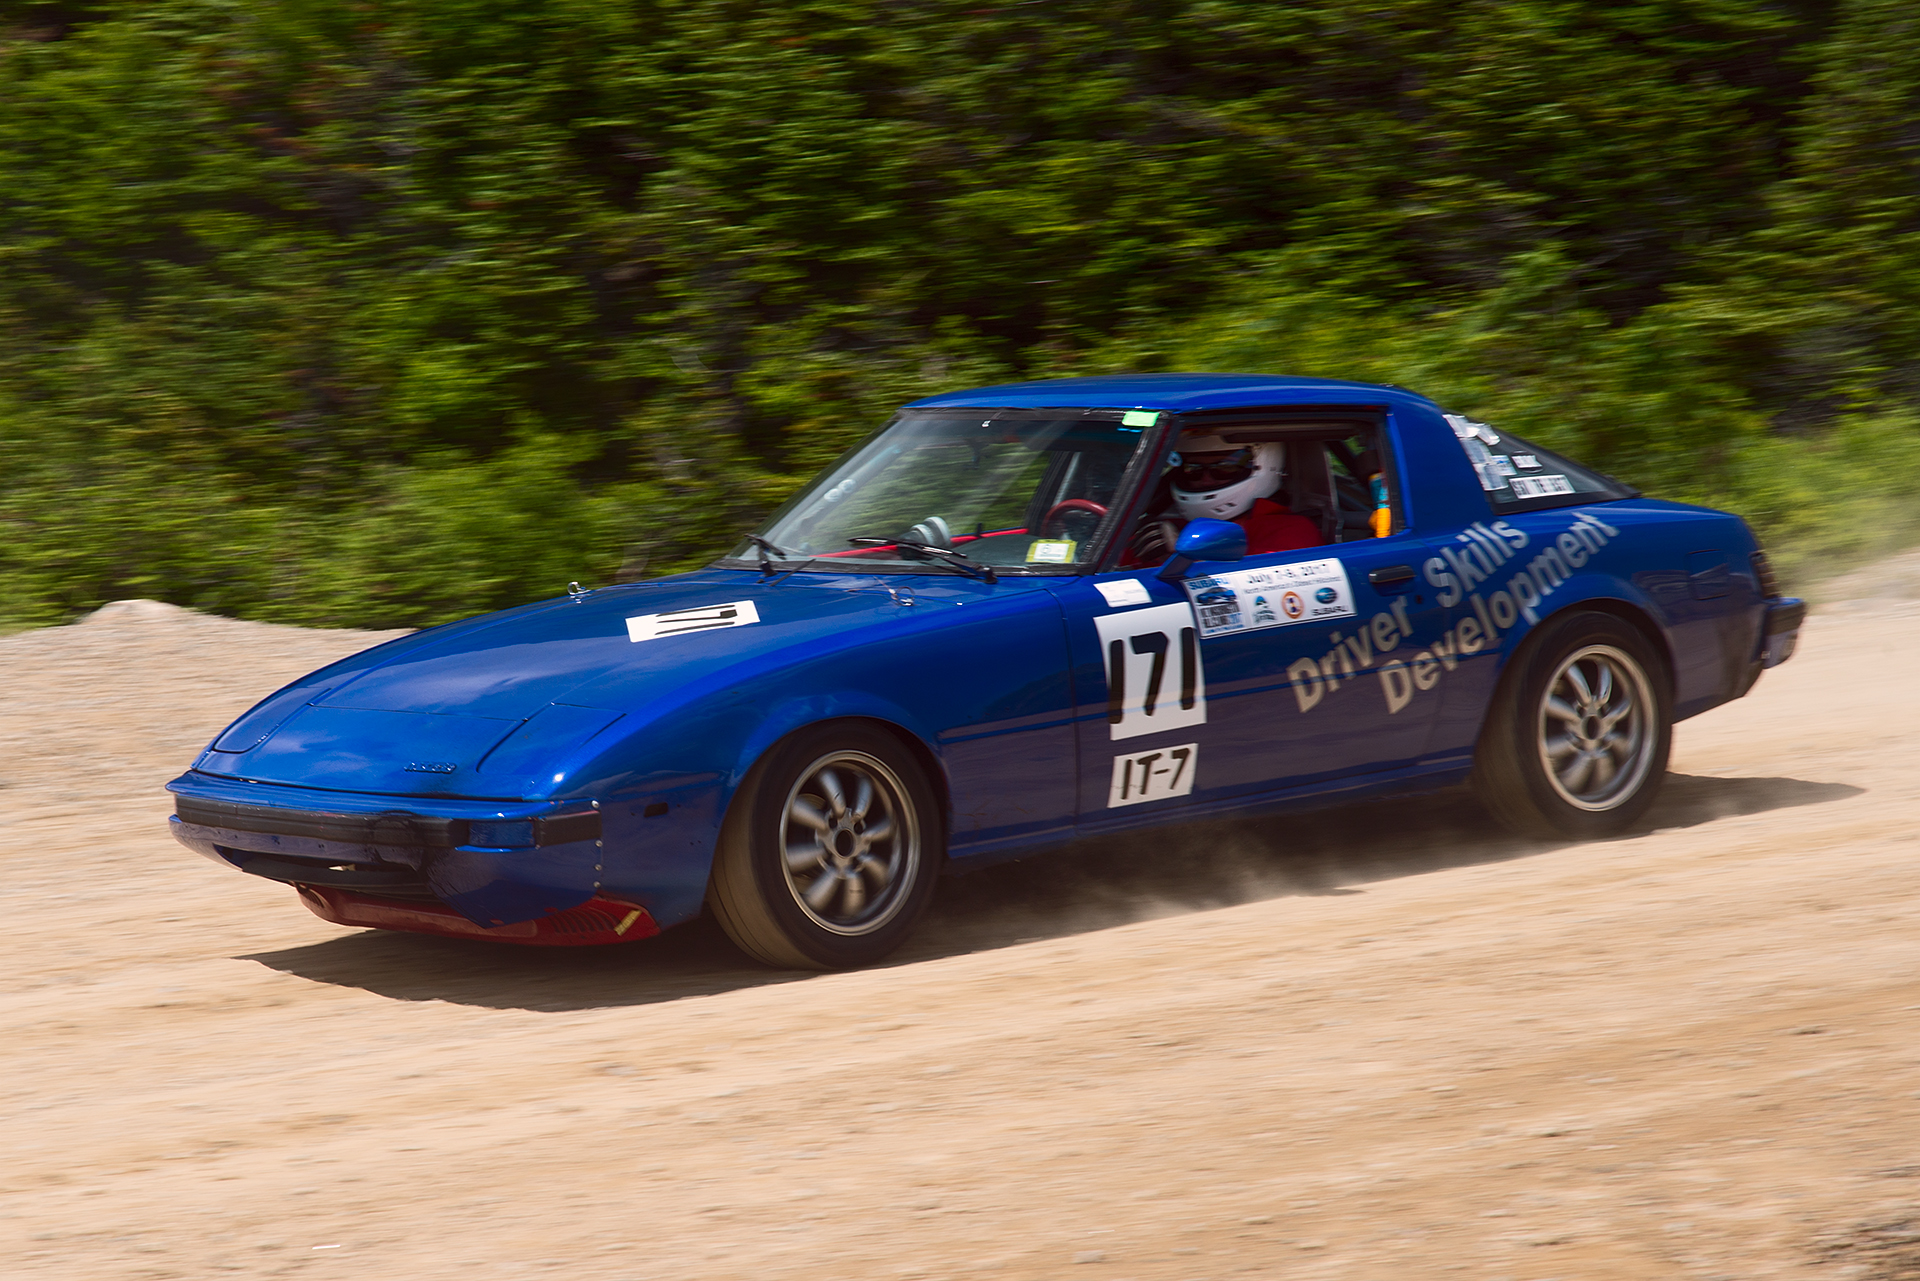 Car 171 at Climb to the Clouds 2017